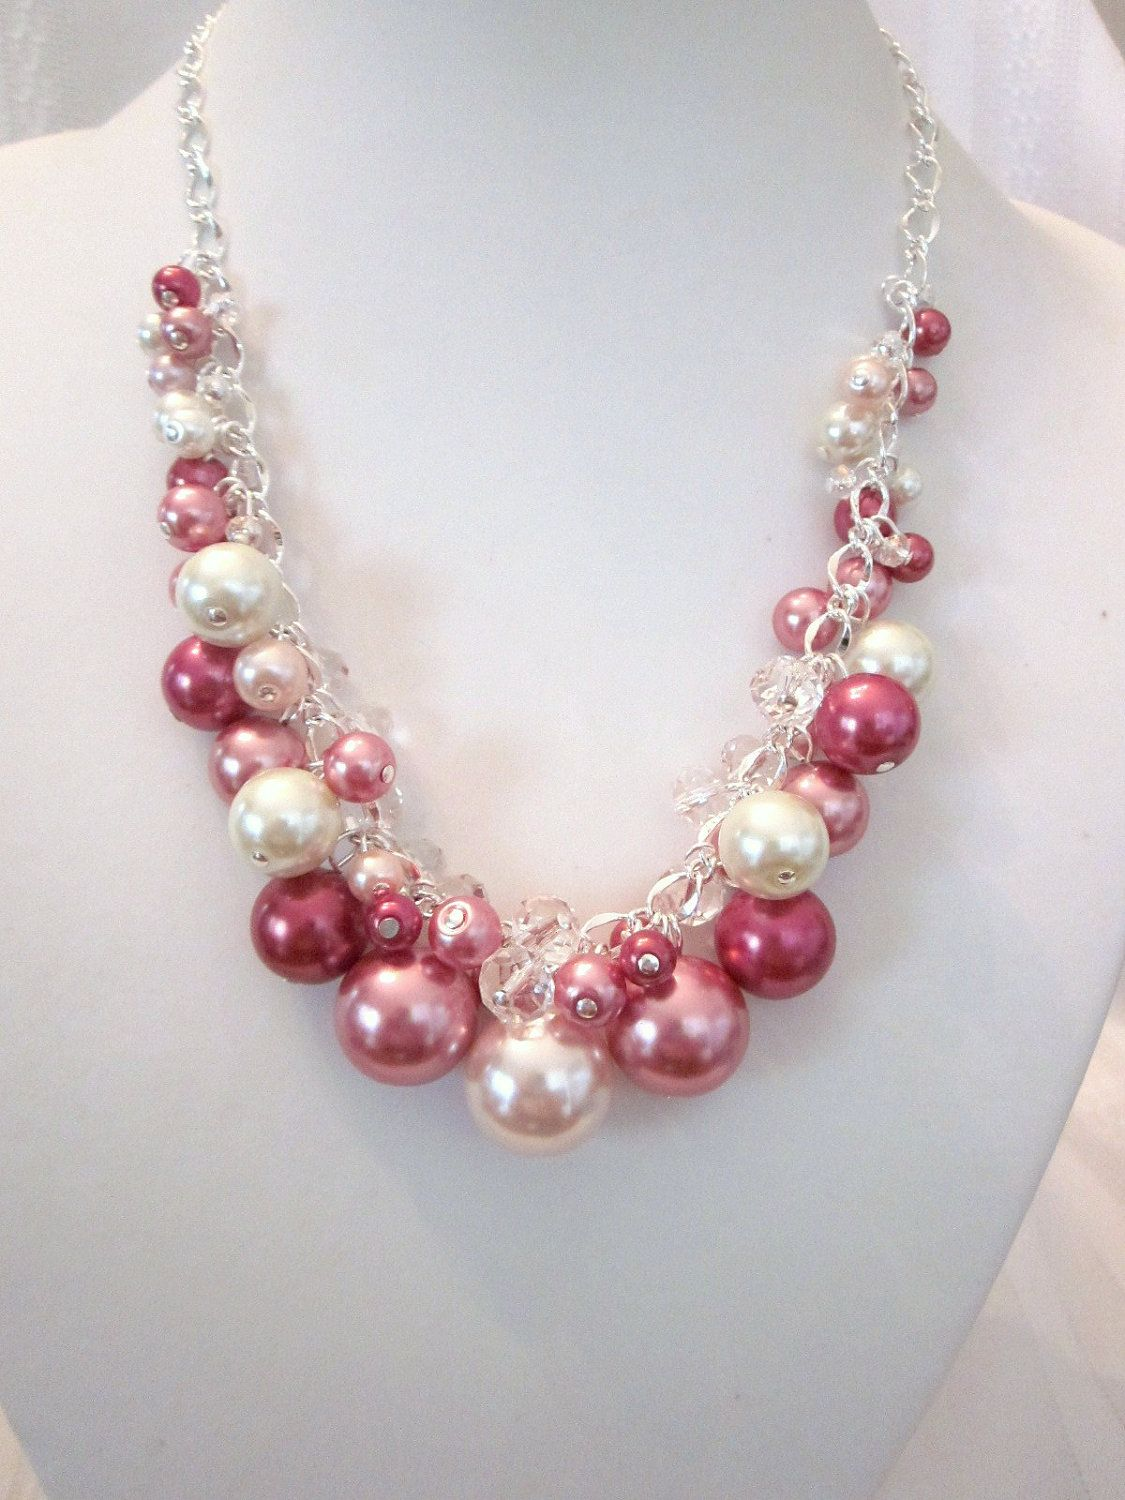 Shades of Rose Pearl and Crystal Cluster Necklace – Chunky, Choker, Bib, Necklace, Wedding, Bridal, Bridesmaid